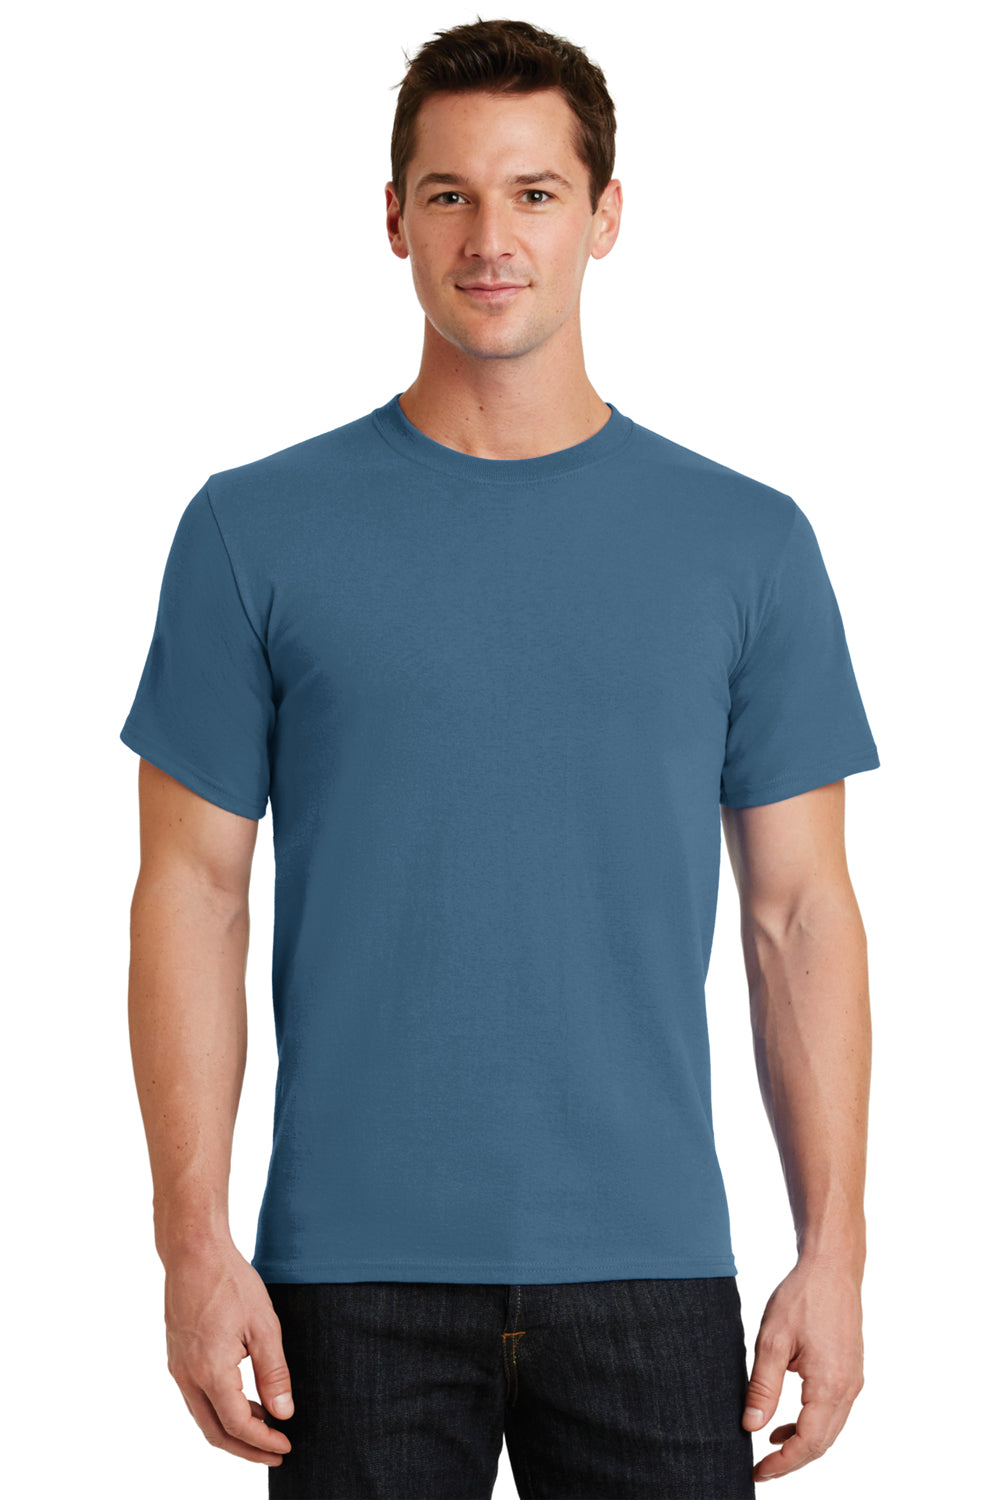 Port & Company PC61 Mens Essential Short Sleeve Crewneck T-Shirt Colonial Blue Front